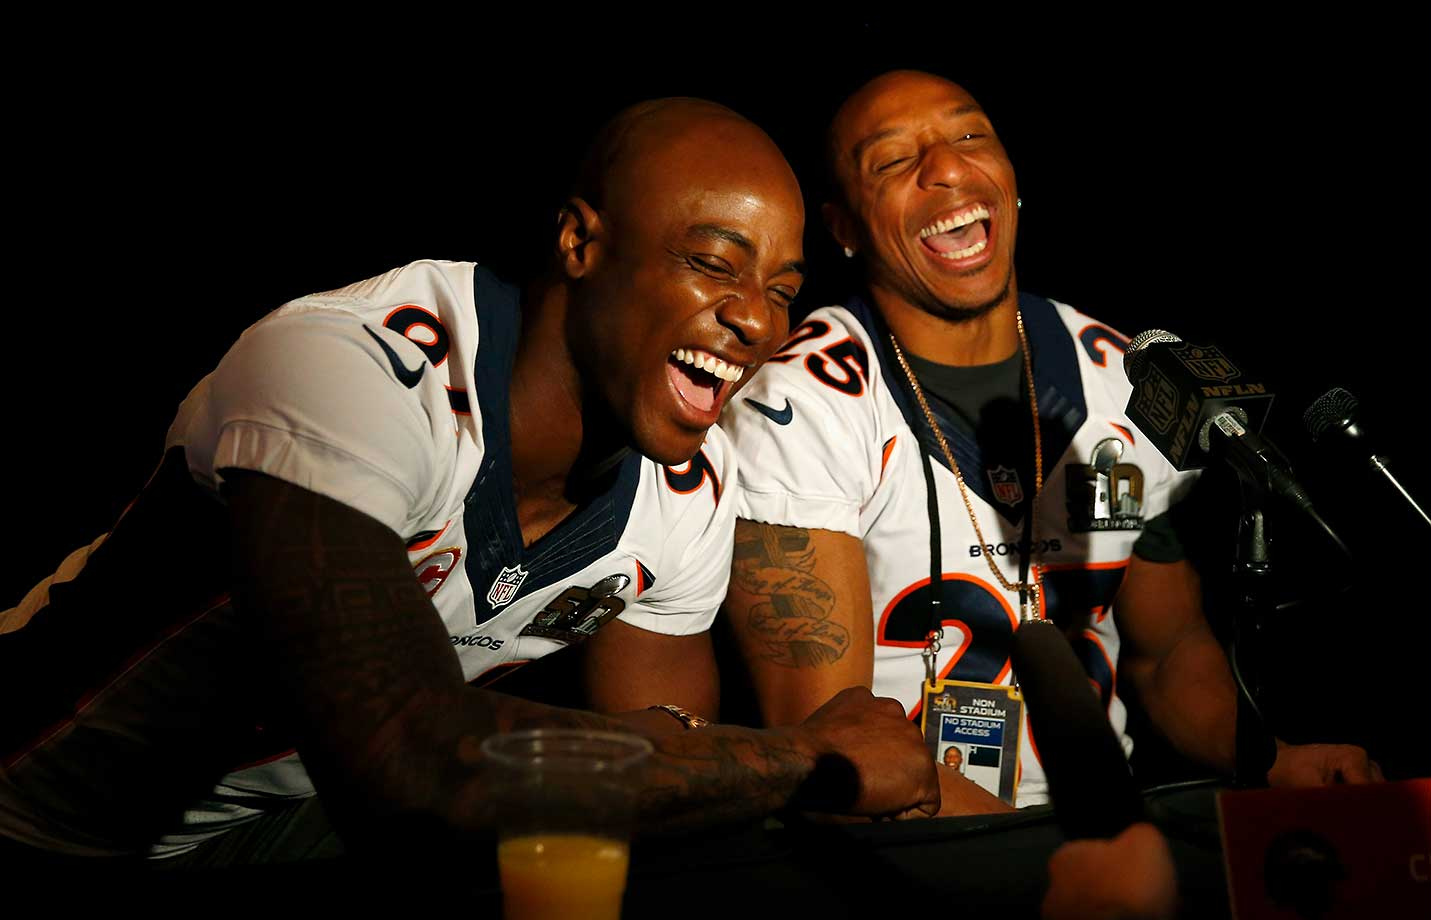 DeMarcus Ware and Chris Harris Jr. of the Denver Broncos joke around as they speak during the Broncos media availability at the Santa Clara Marriott.